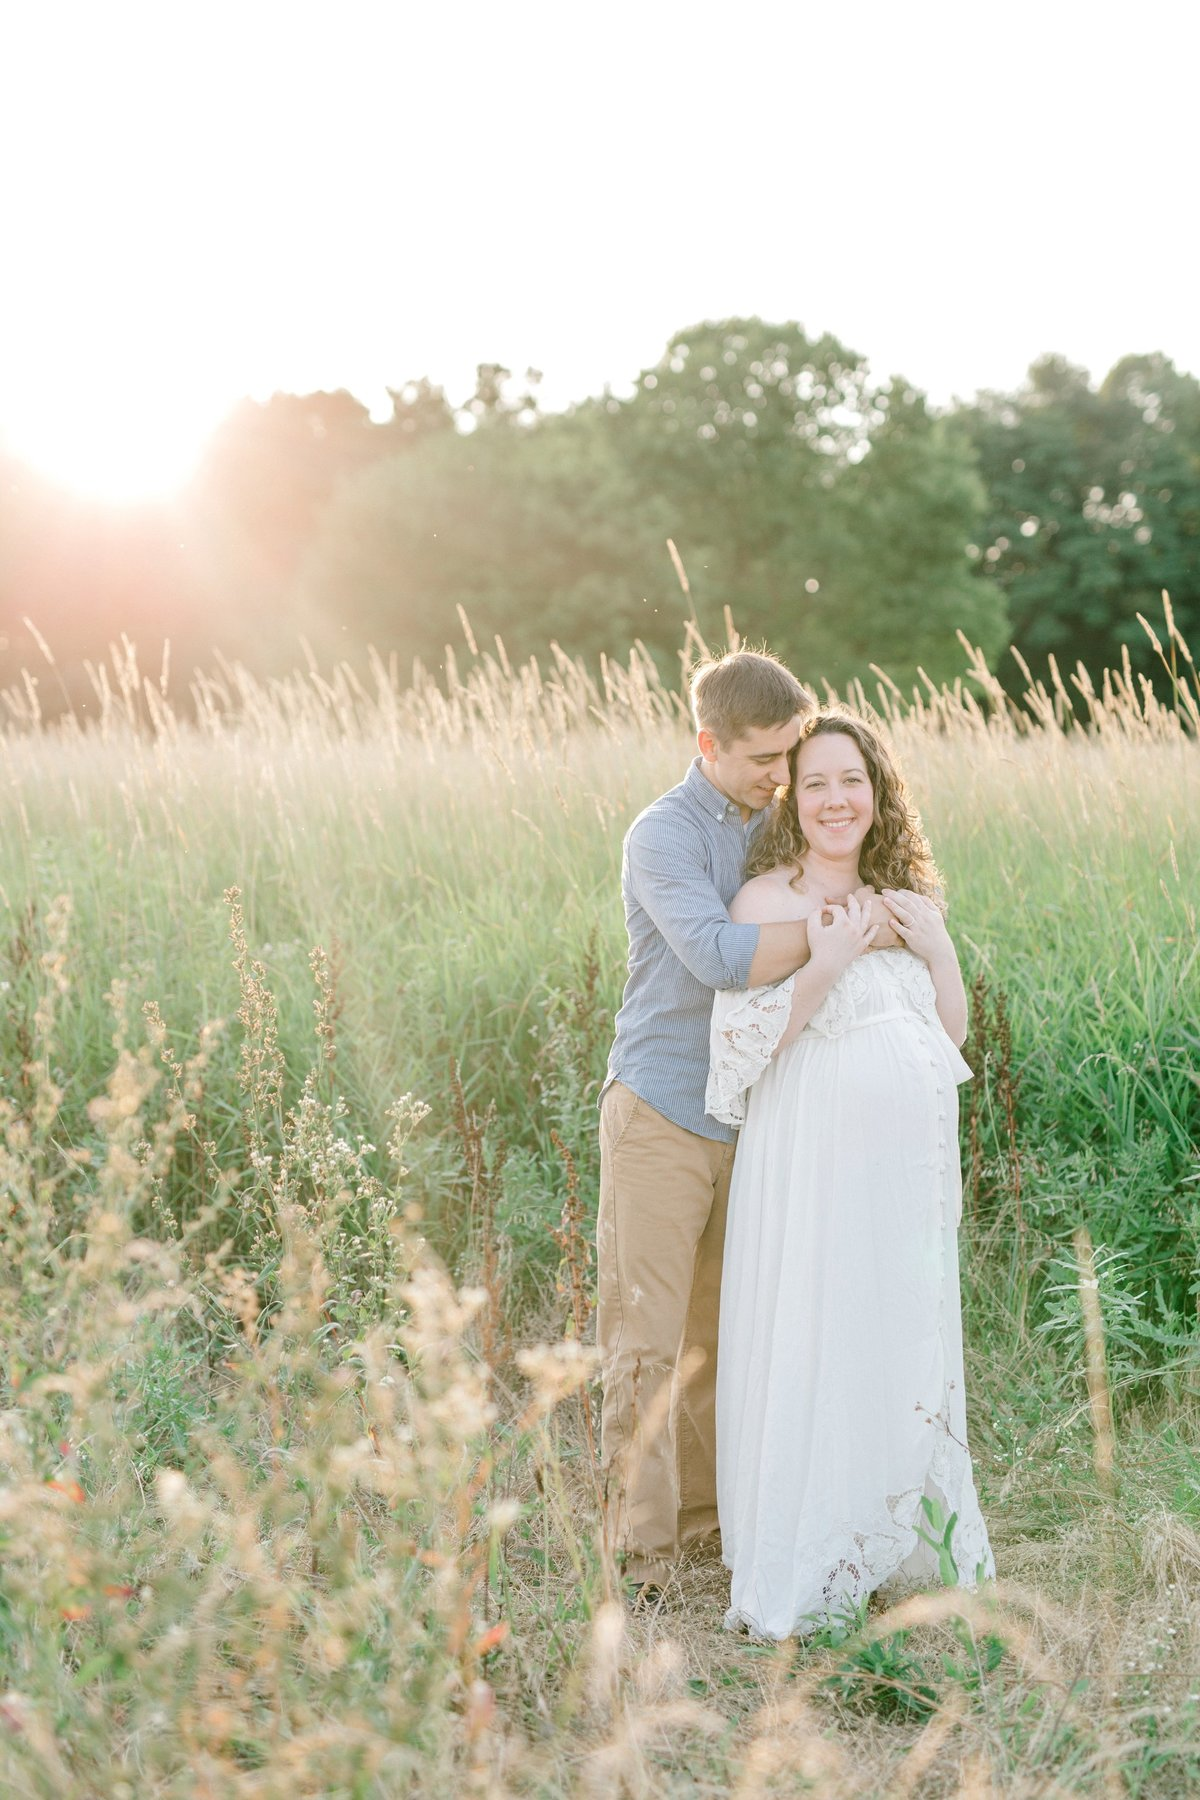 ETHEREAL SUMMER MATERNITY SESSION | MECHANICSBURG MATERNITY PHOTOGRAPHER_0989